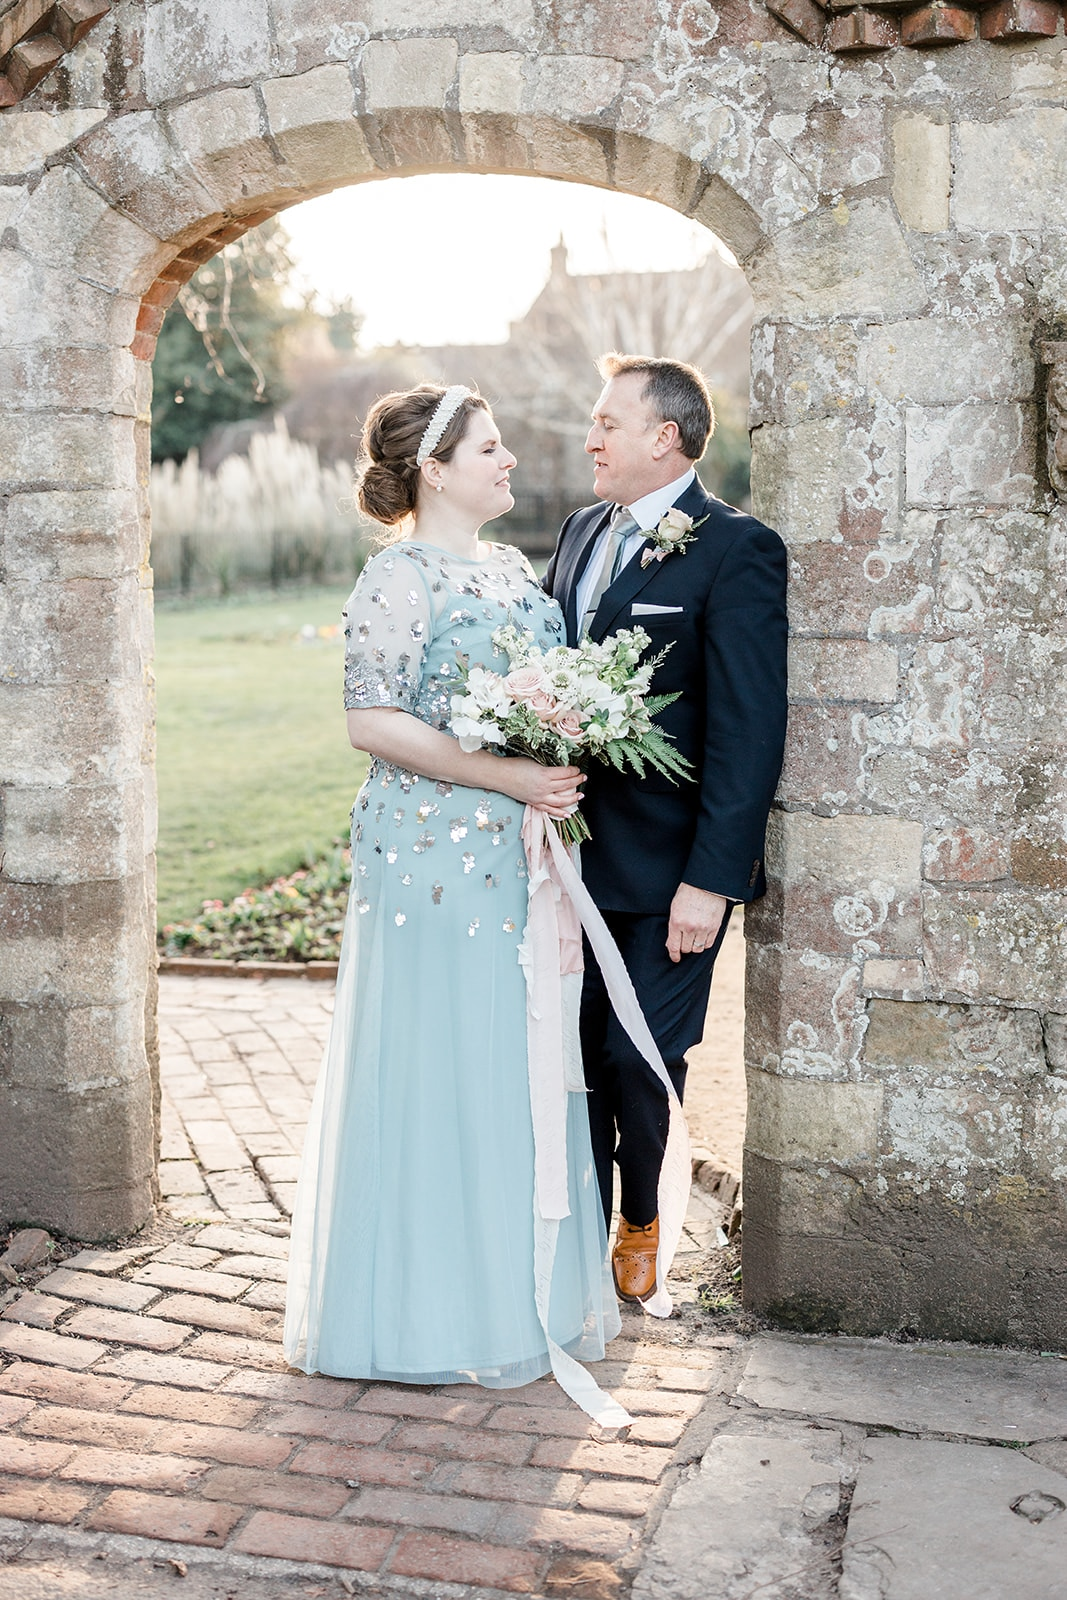 Lewes Wedding Photos at Southover Grange with Sussex Photographer